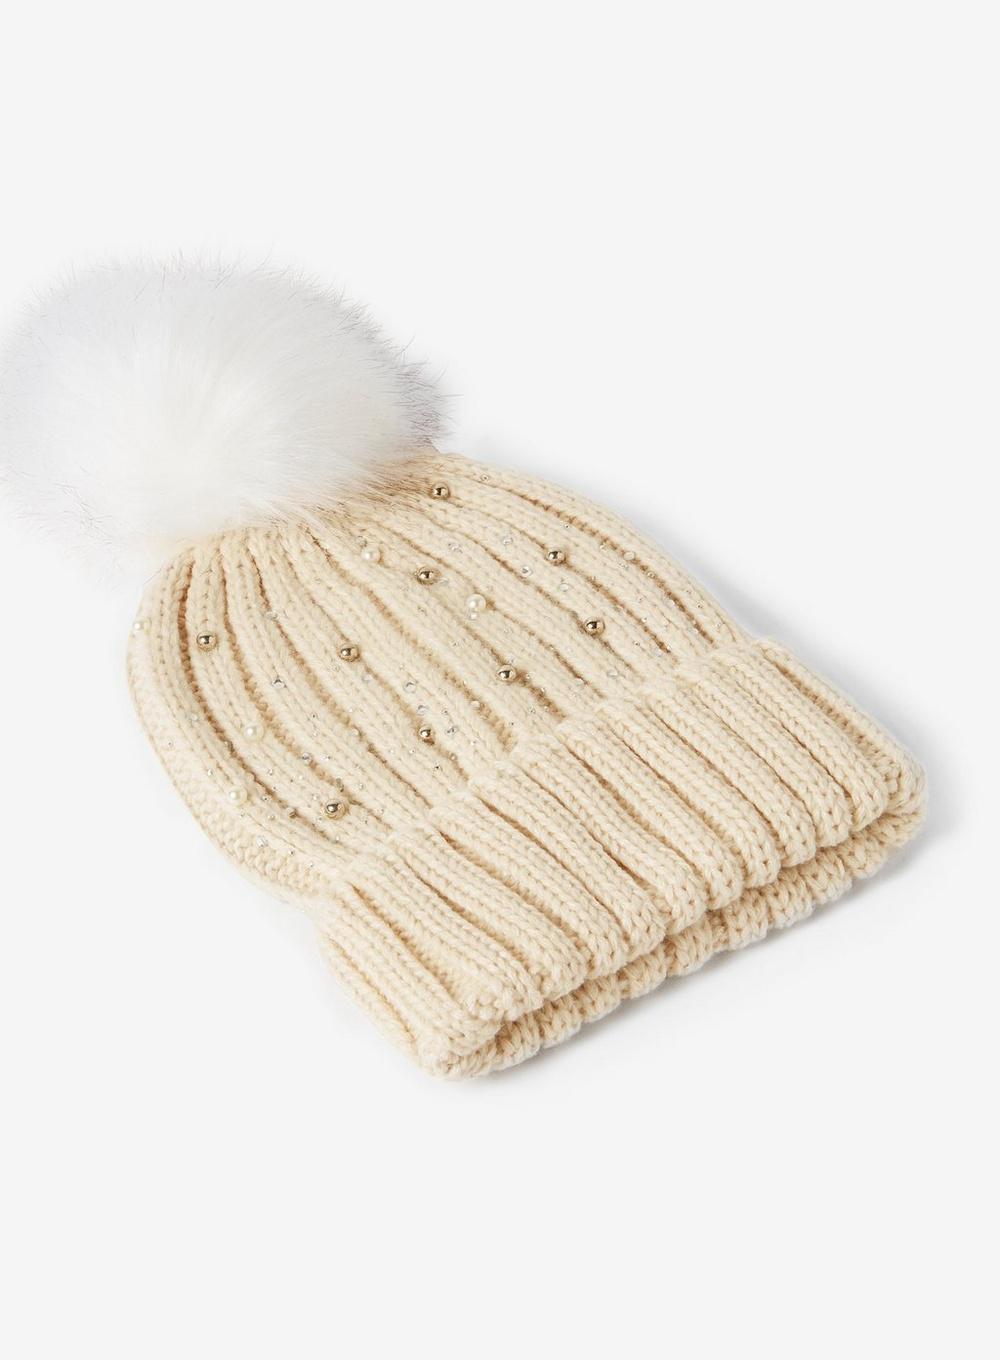 Lyst - Dorothy Perkins Cream Pearl Embellished Pom Pom Hat in Natural a5929fb023bf